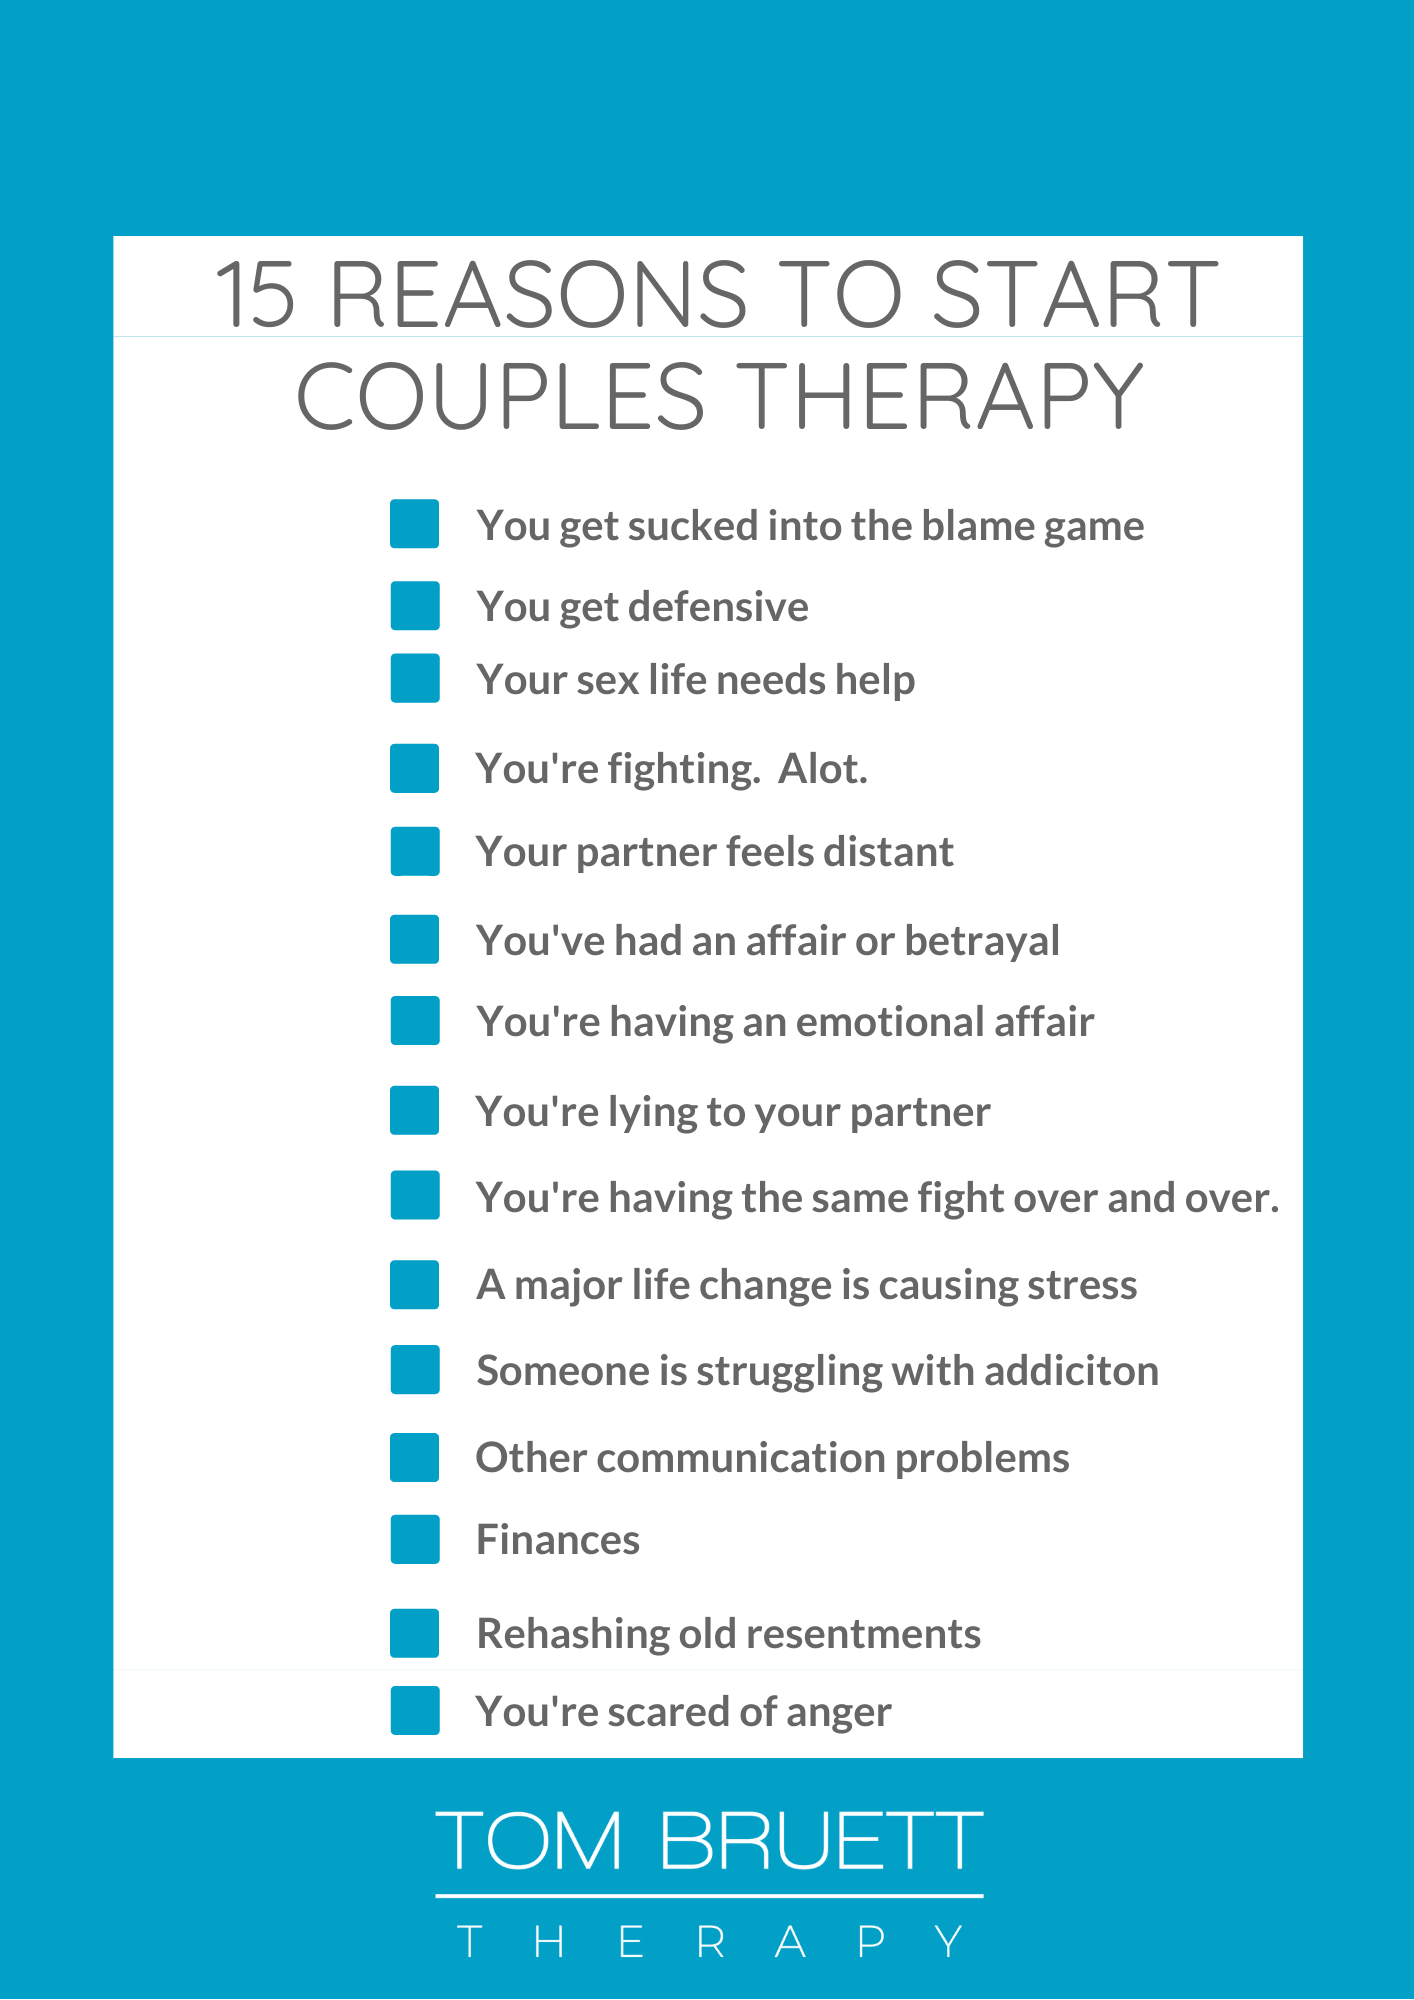 15-reasons-for-going-to-couples-therapy